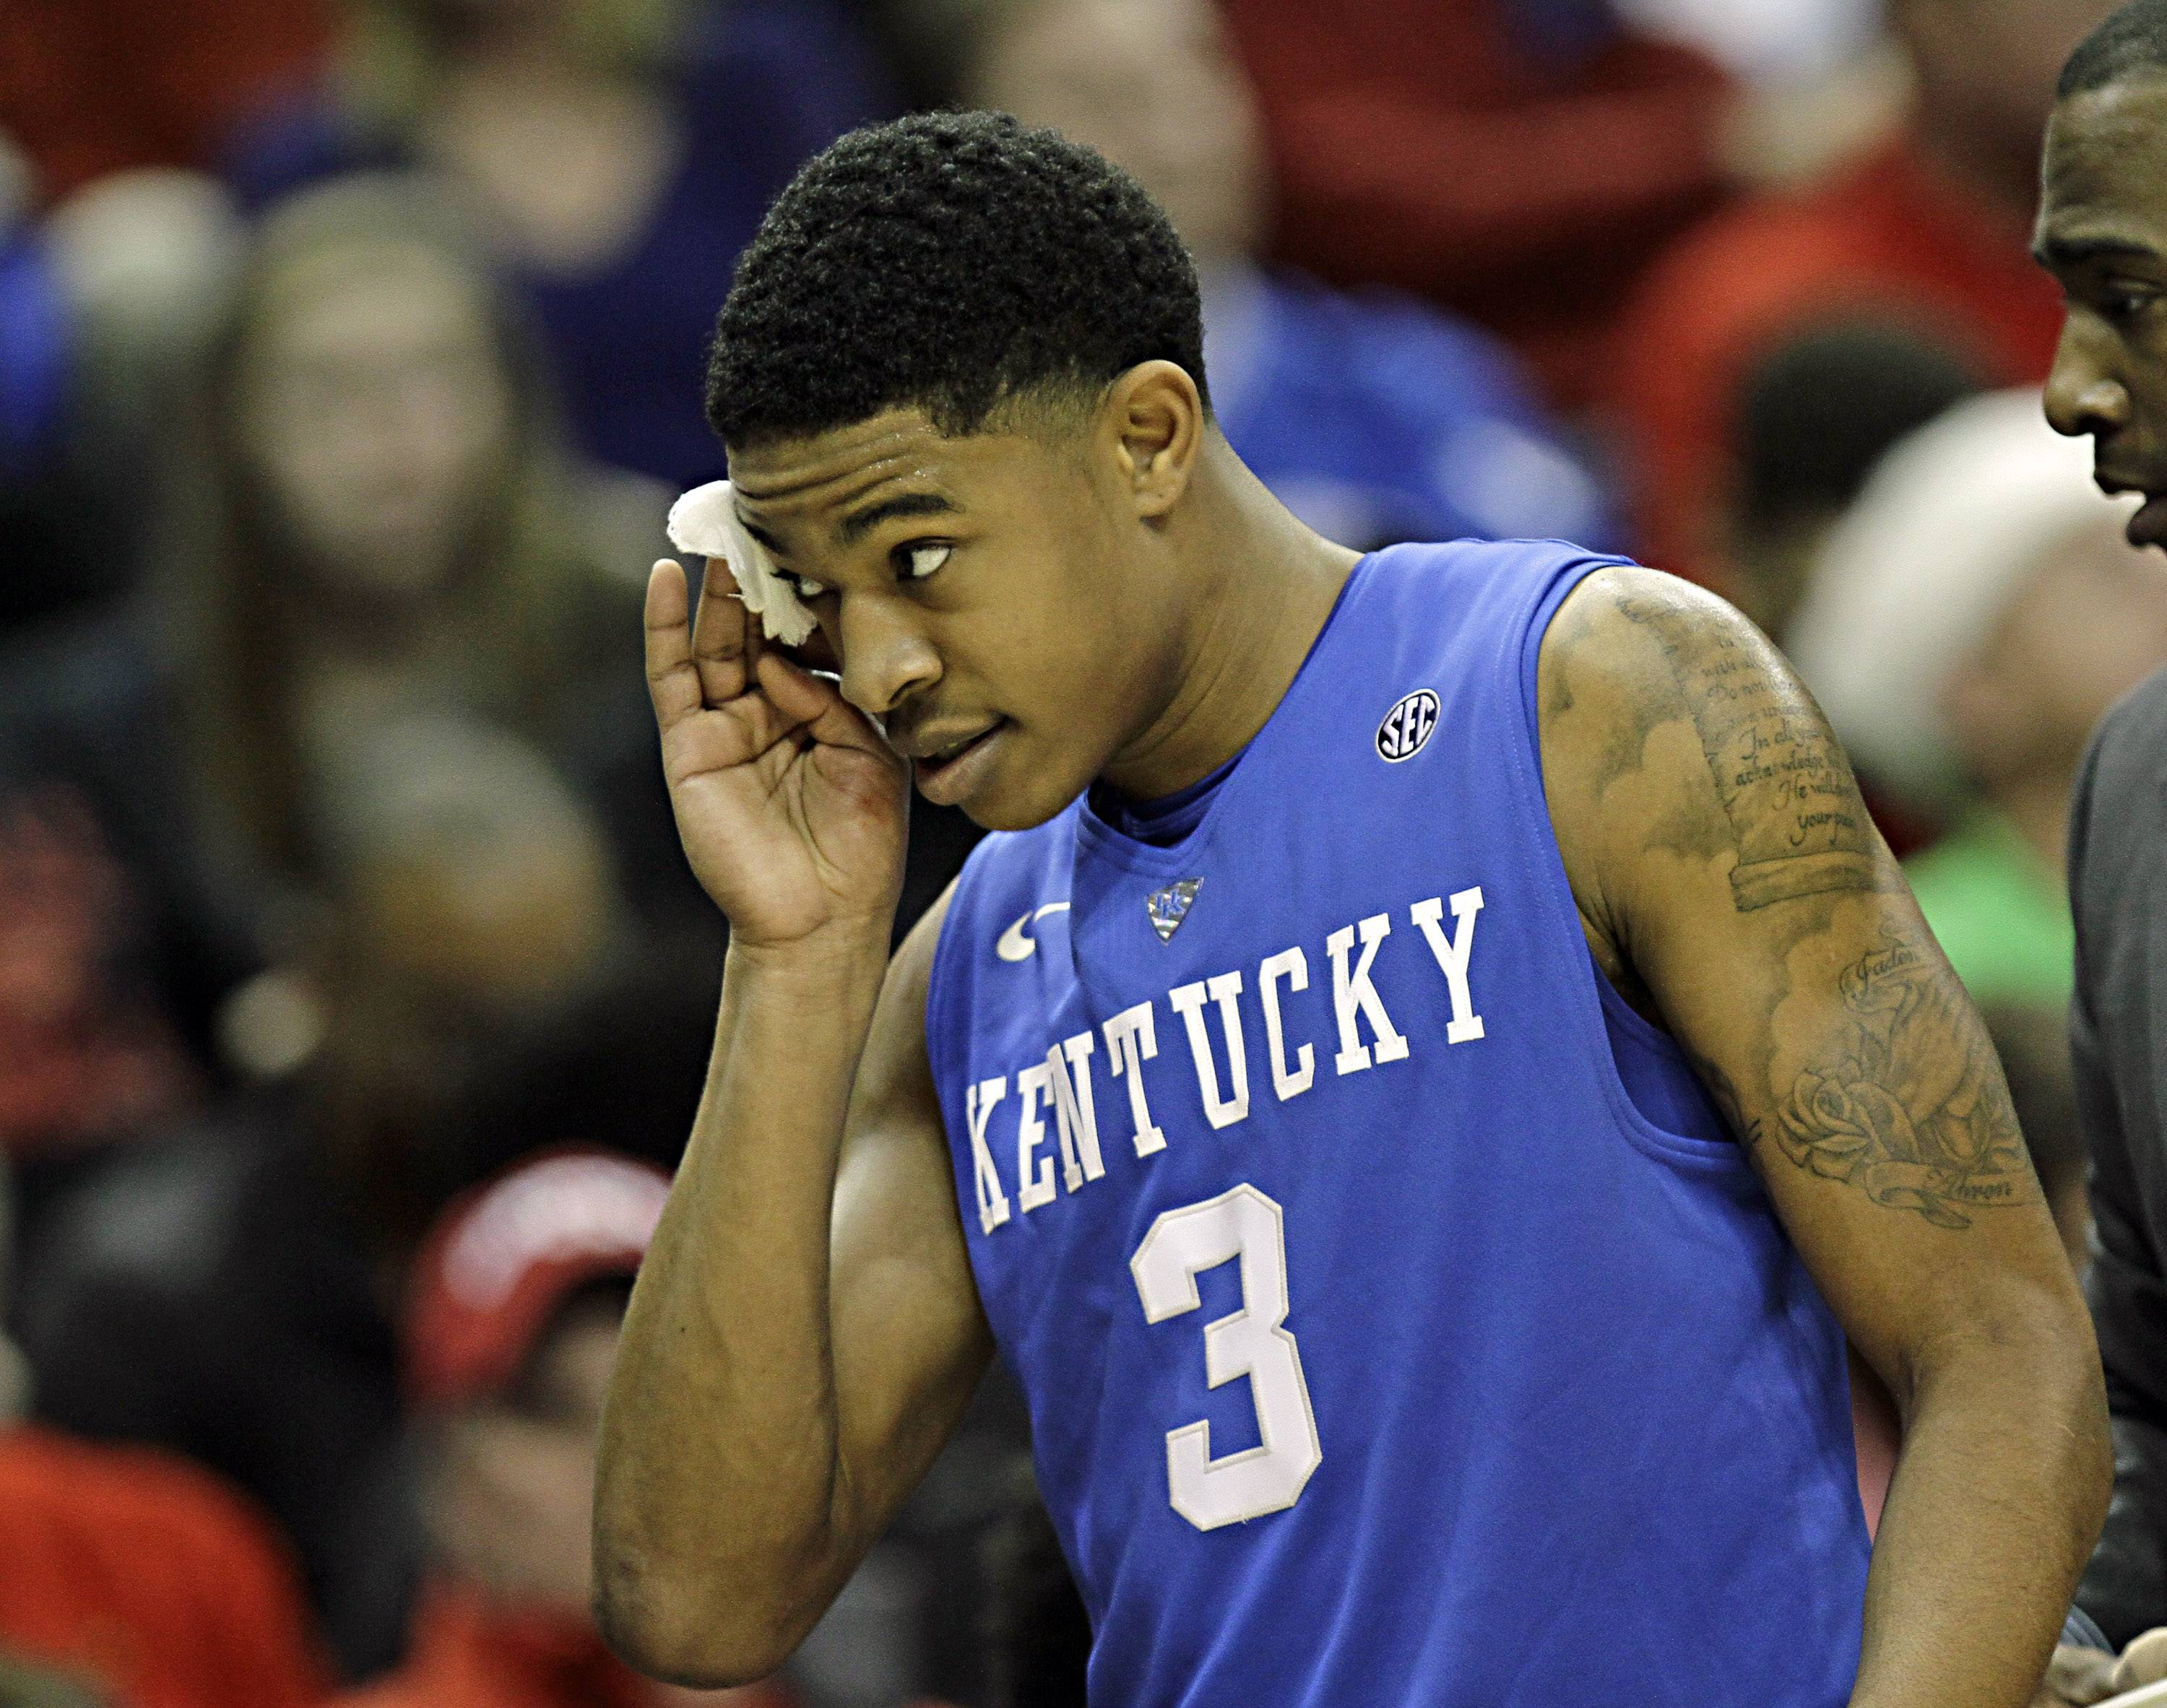 Kentucky freshman guard Tyler Ulis was forced to the bench by a cut over his right eye in the first half, but came back to led Kentucky to a 58-50 victory over Louisville in their NCAA college basketball game in Louisville, Ky., Saturday, Dec. 27, 2014. (AP Photo/Garry Jones)